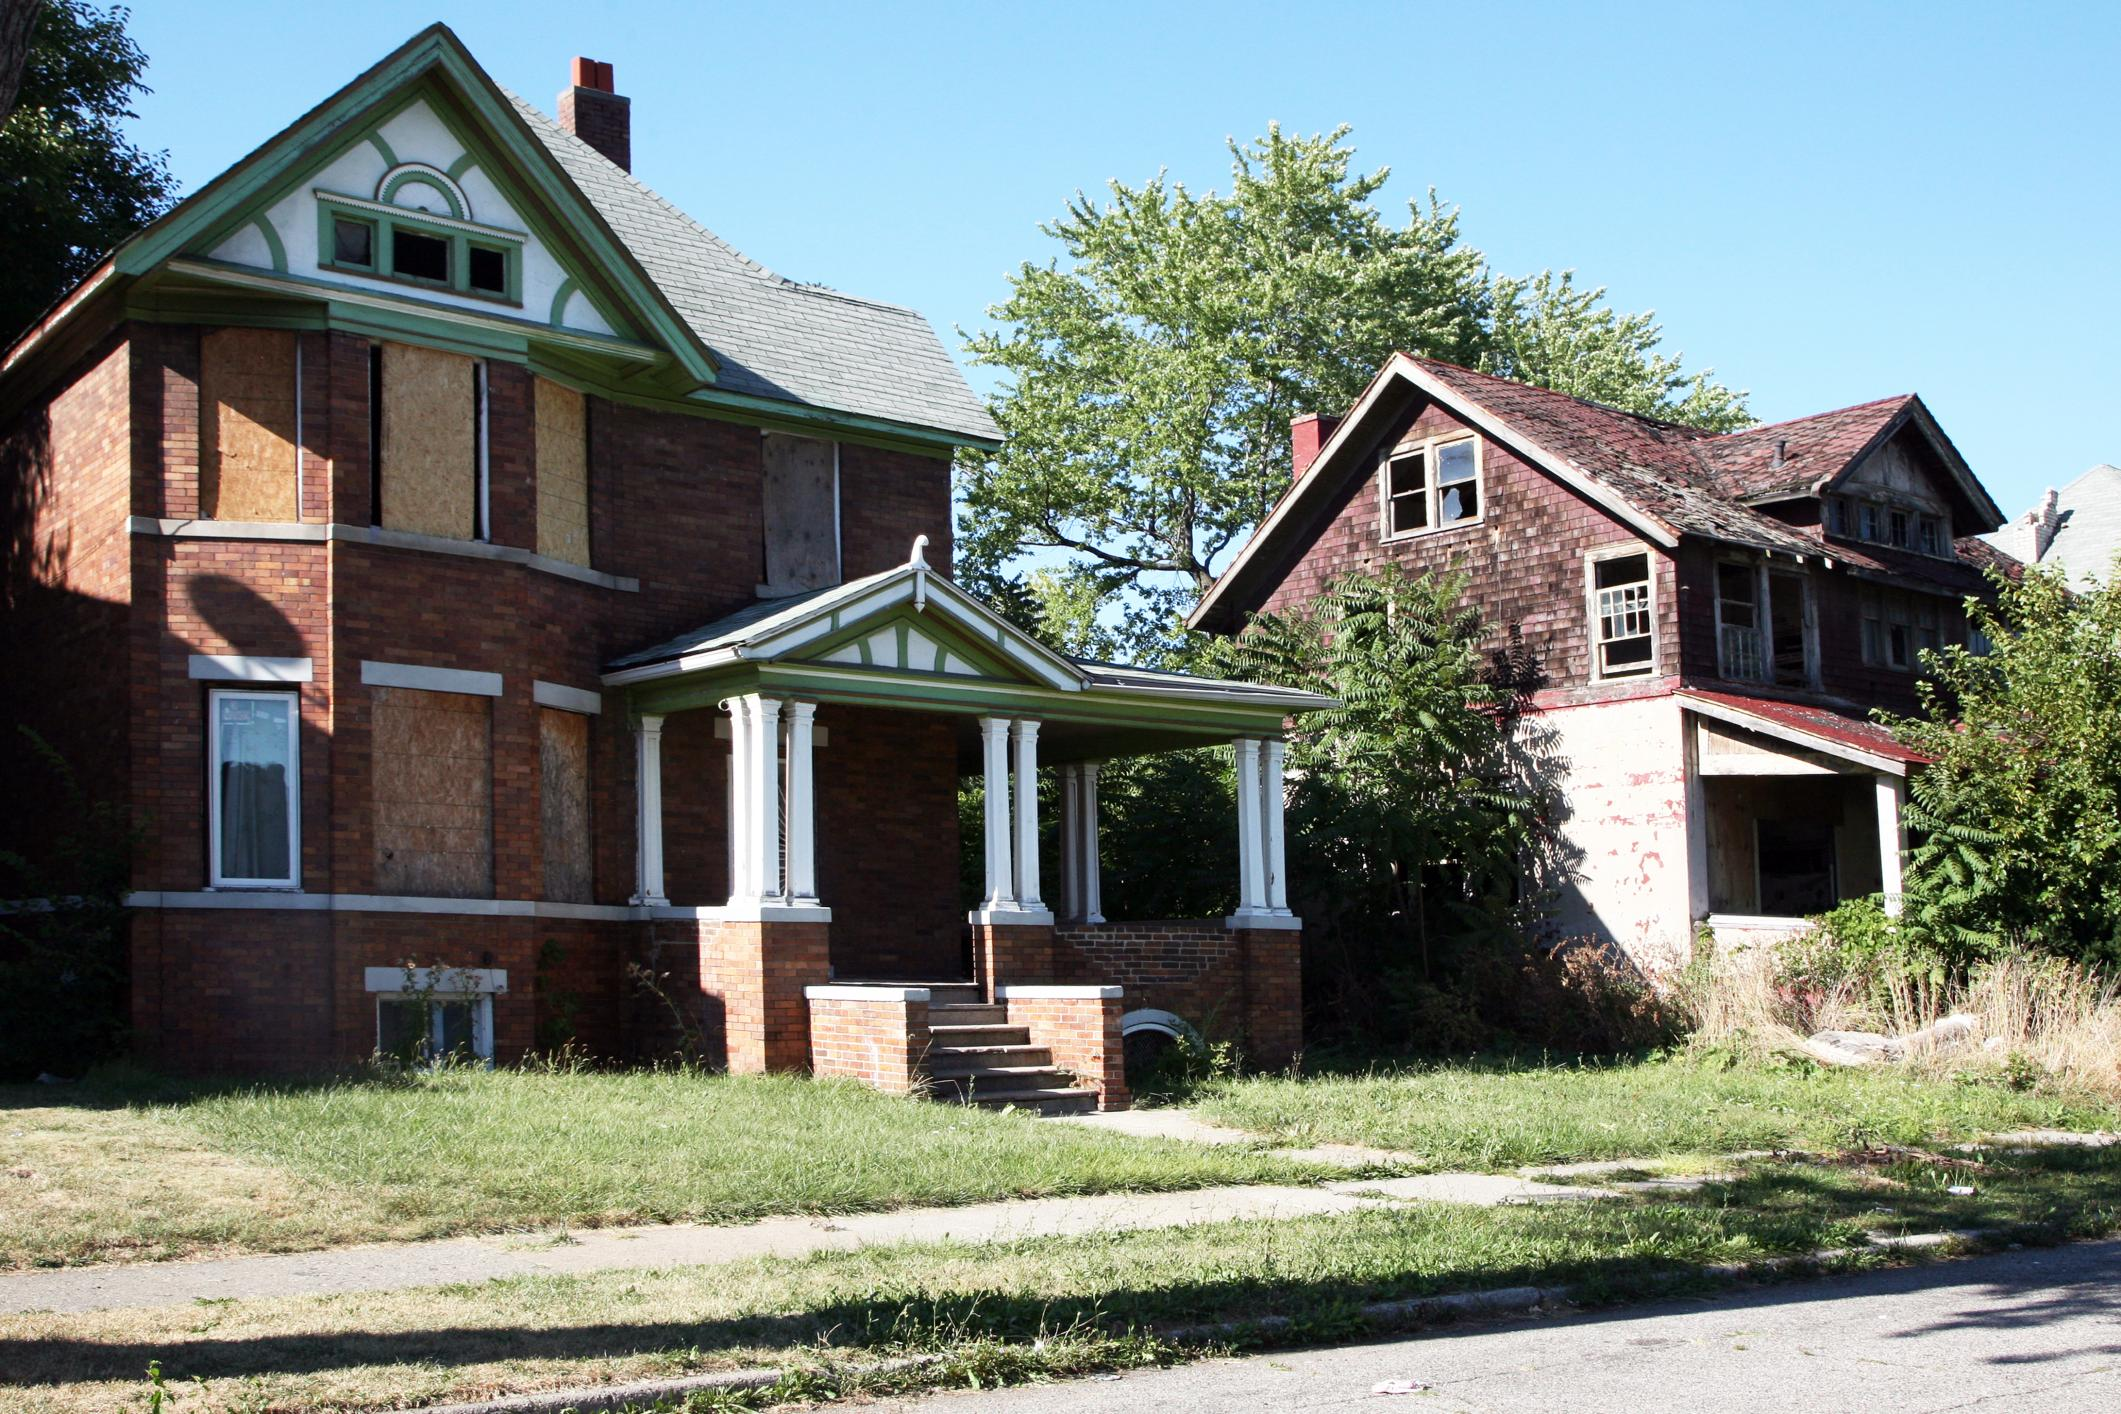 real estate iBuyer distressed house, with weeds and boarded up windows